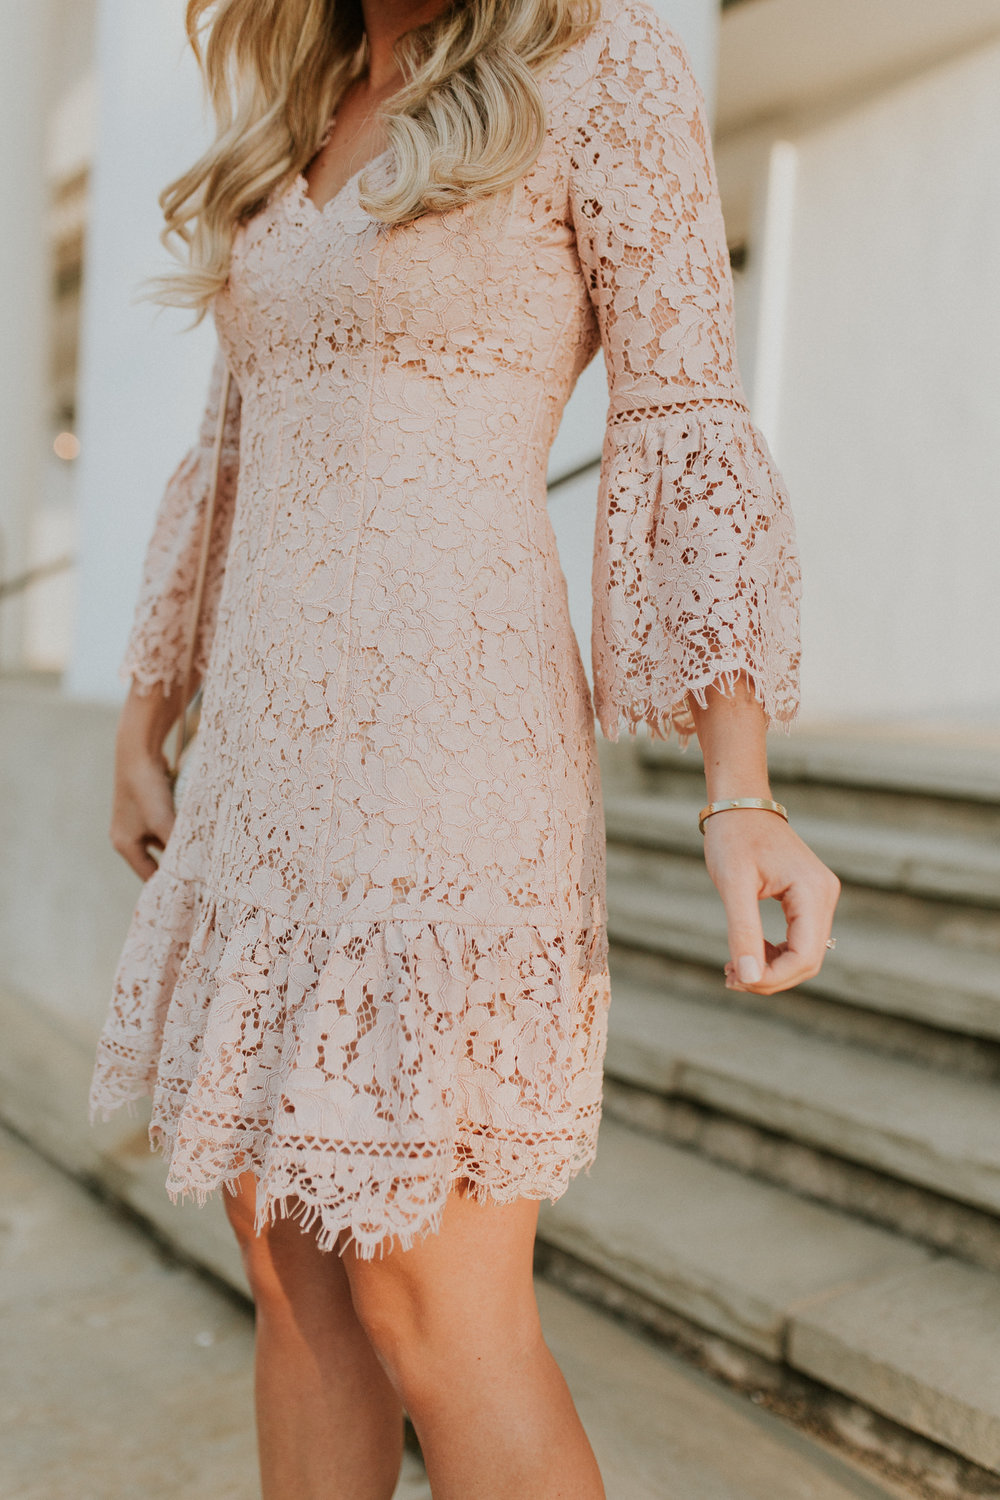 Blogger Gracefully Taylored in Blush Lace Dress Nordstrom(27).jpg